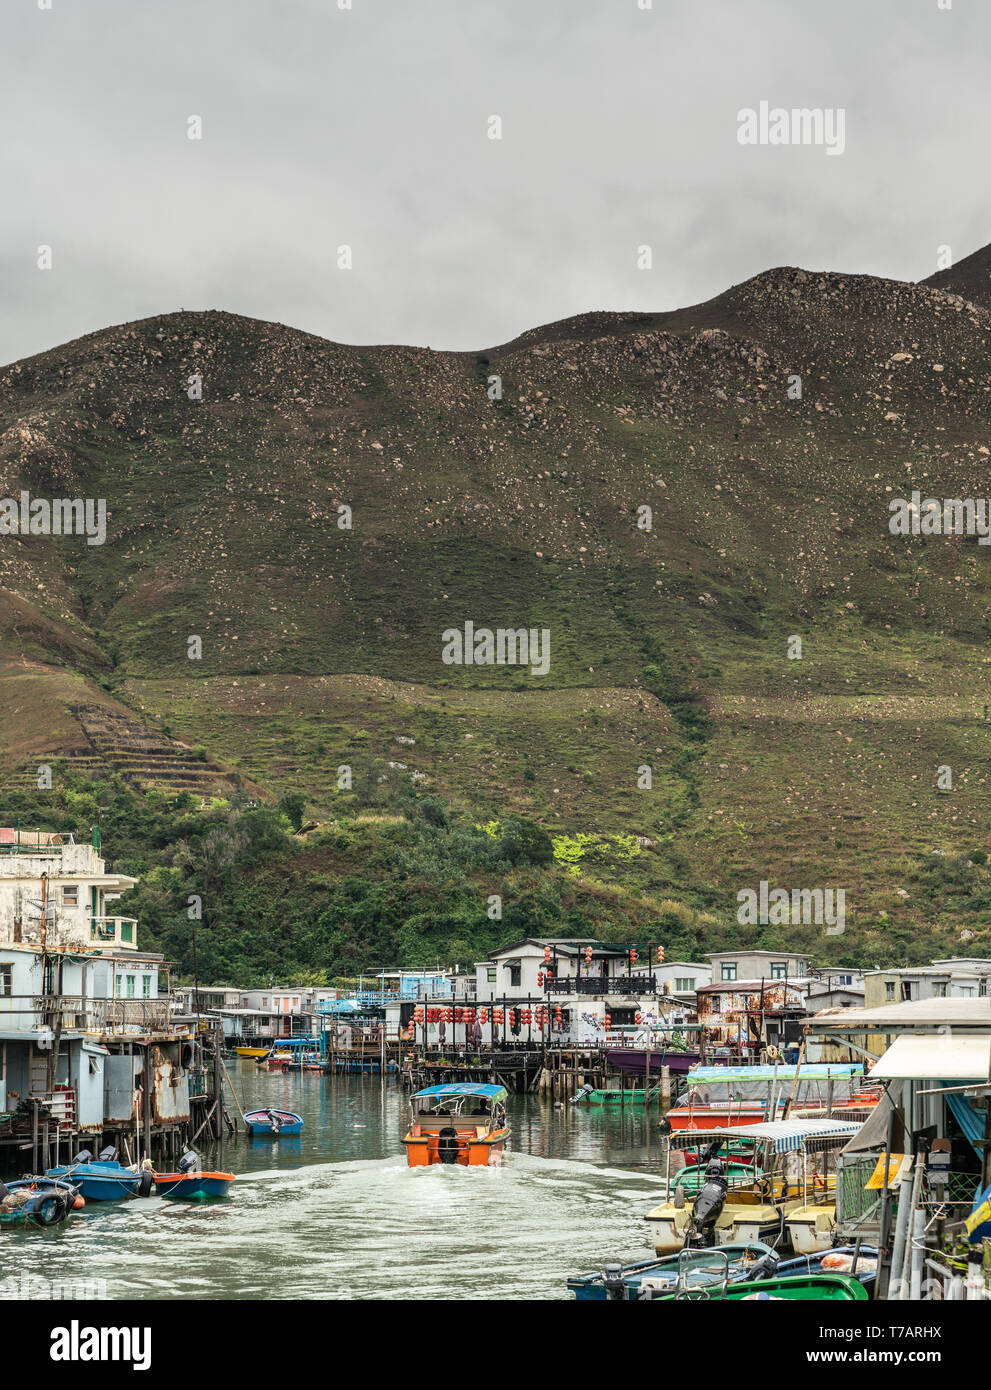 Hong Kong, China - March 7, 2019: Tai O Fishing village. Portrait, Motor sloop for tourists sails on river flanked on both sides by buildings. Green h - Stock Image